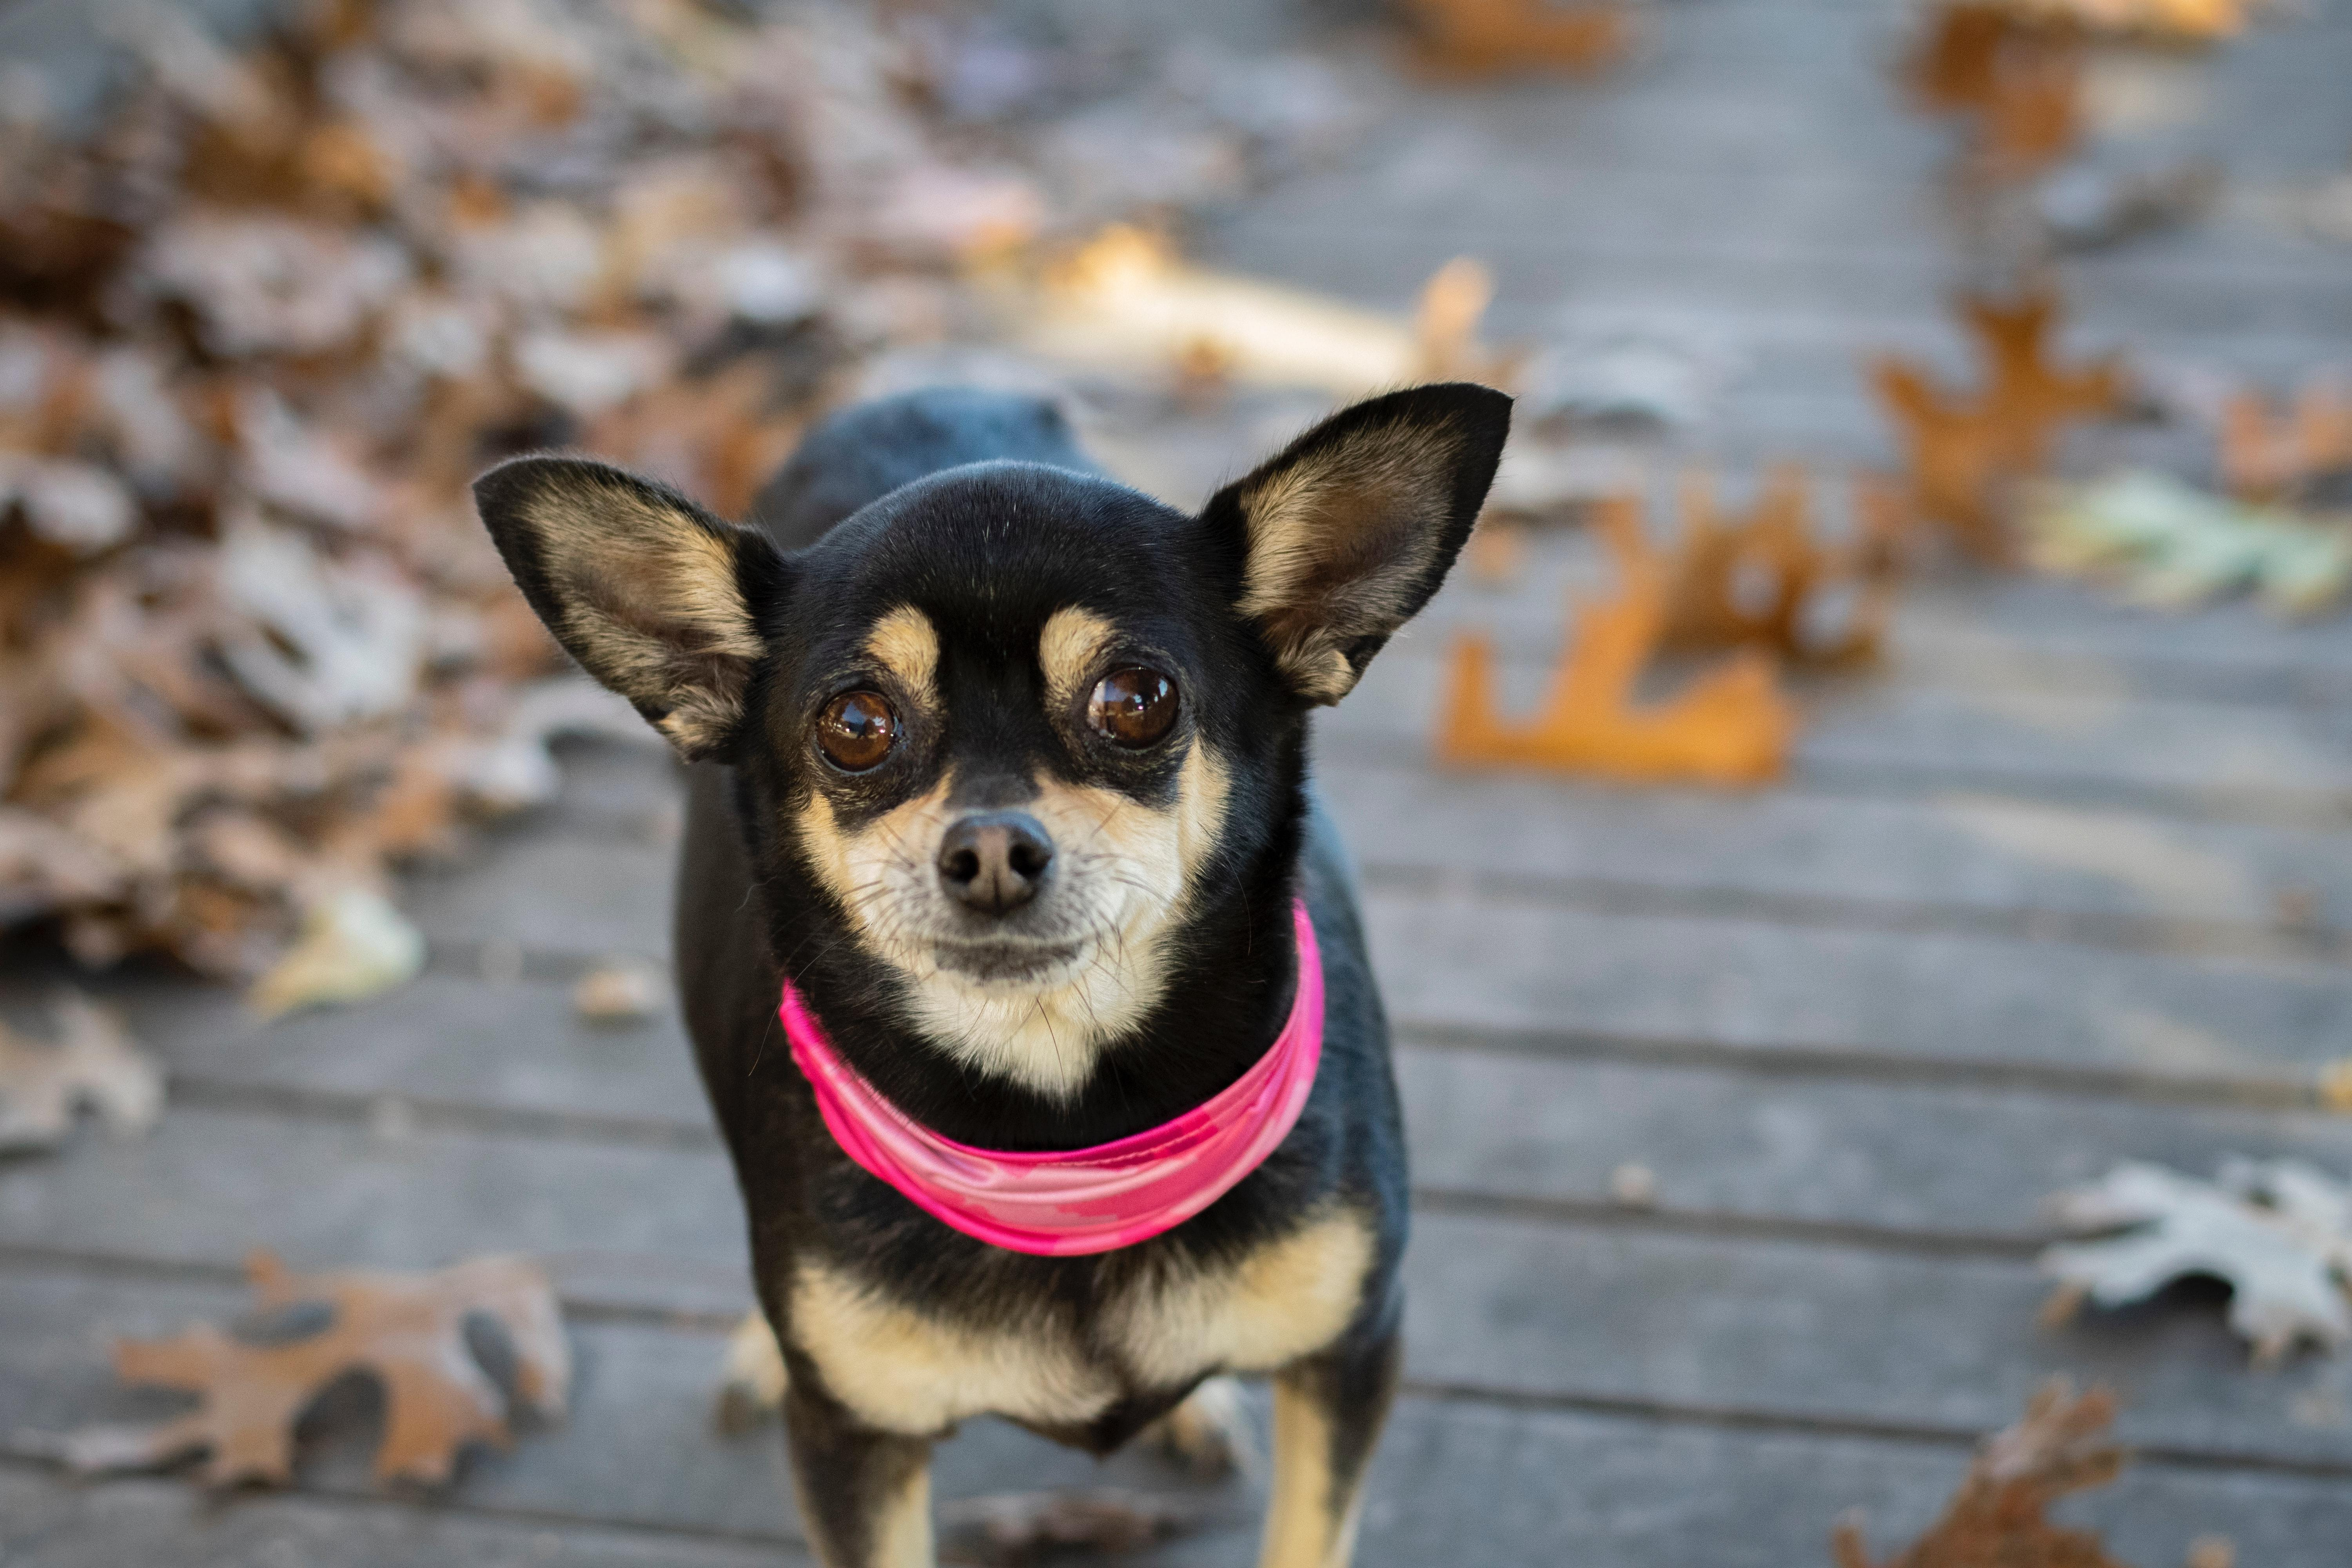 What can I give my Chihuahua for pain